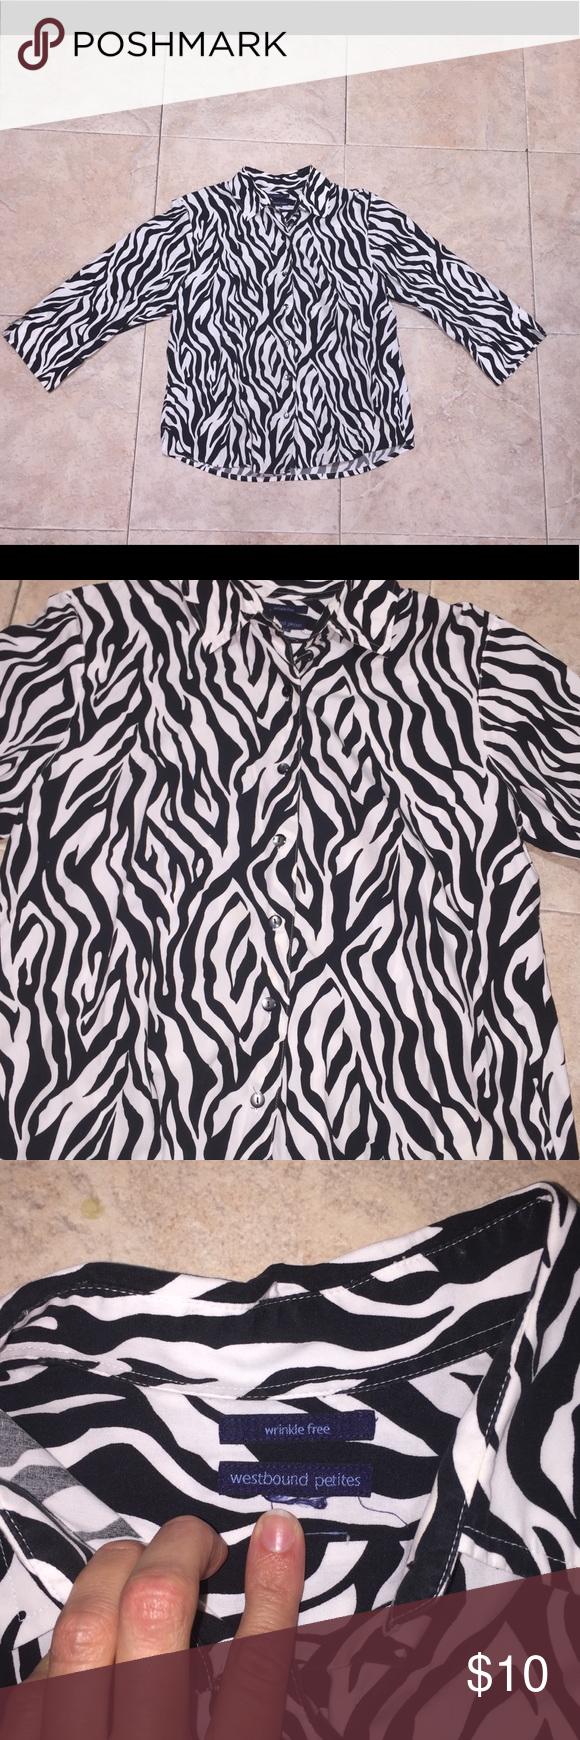 cabdc7f5c1b Petite Black White Zebra Stripe Blouse Westbound Petites Black White Zebra  Striped Abstract Wrinkle Free Dressy Button Up 12 Petite Blouse Business  Casual ...